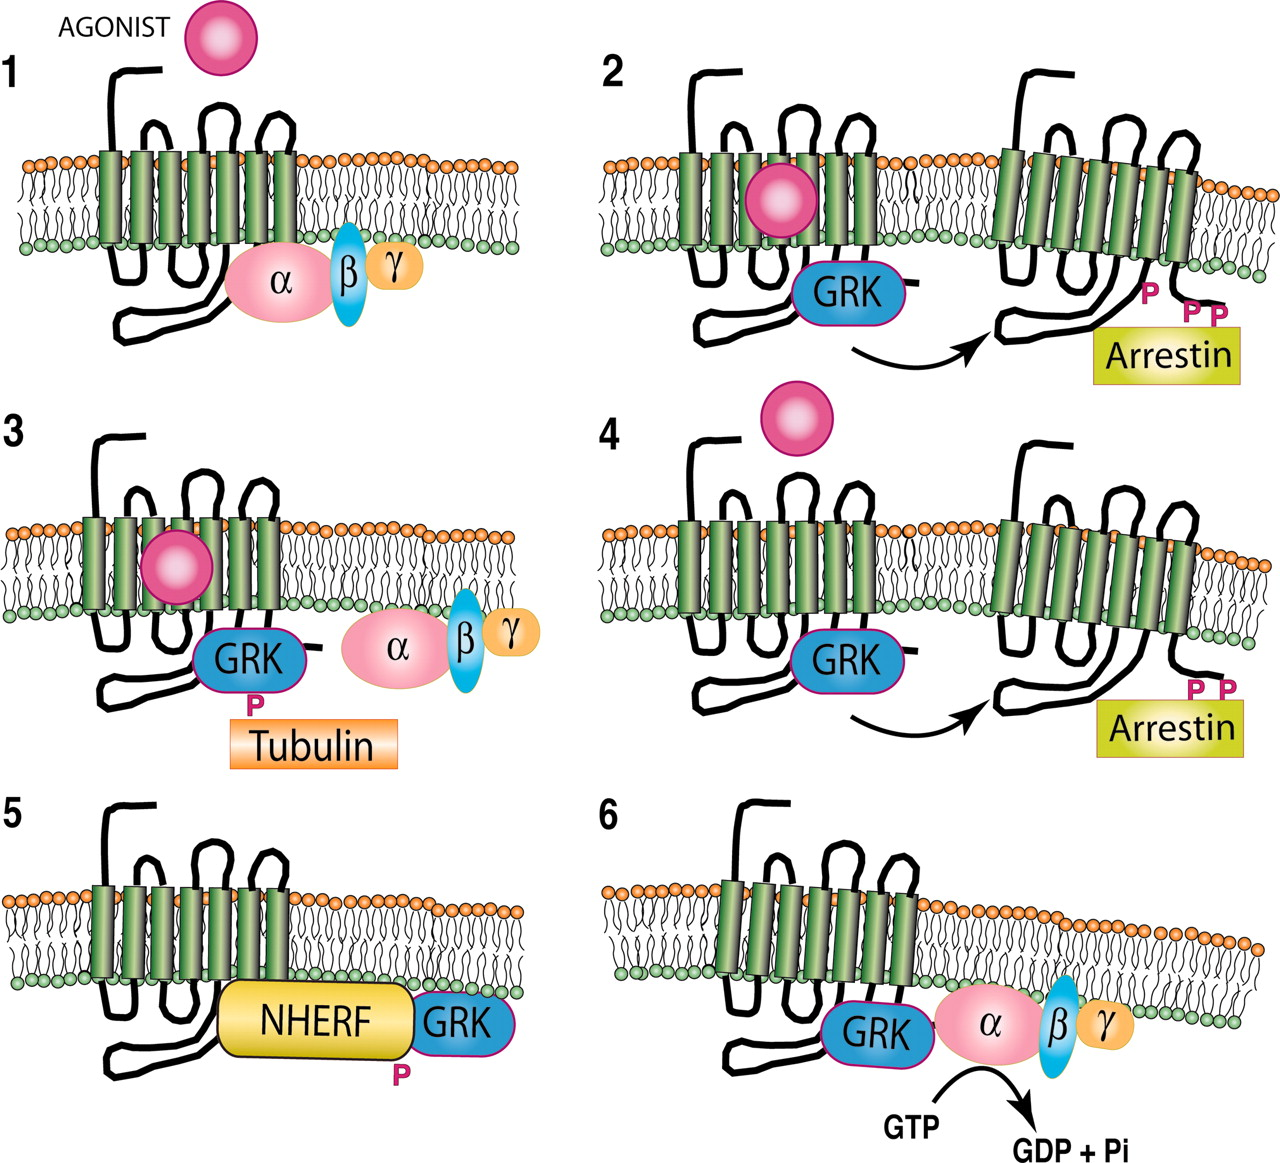 Novel Features Of G Protein-Coupled Receptor Kinase 4